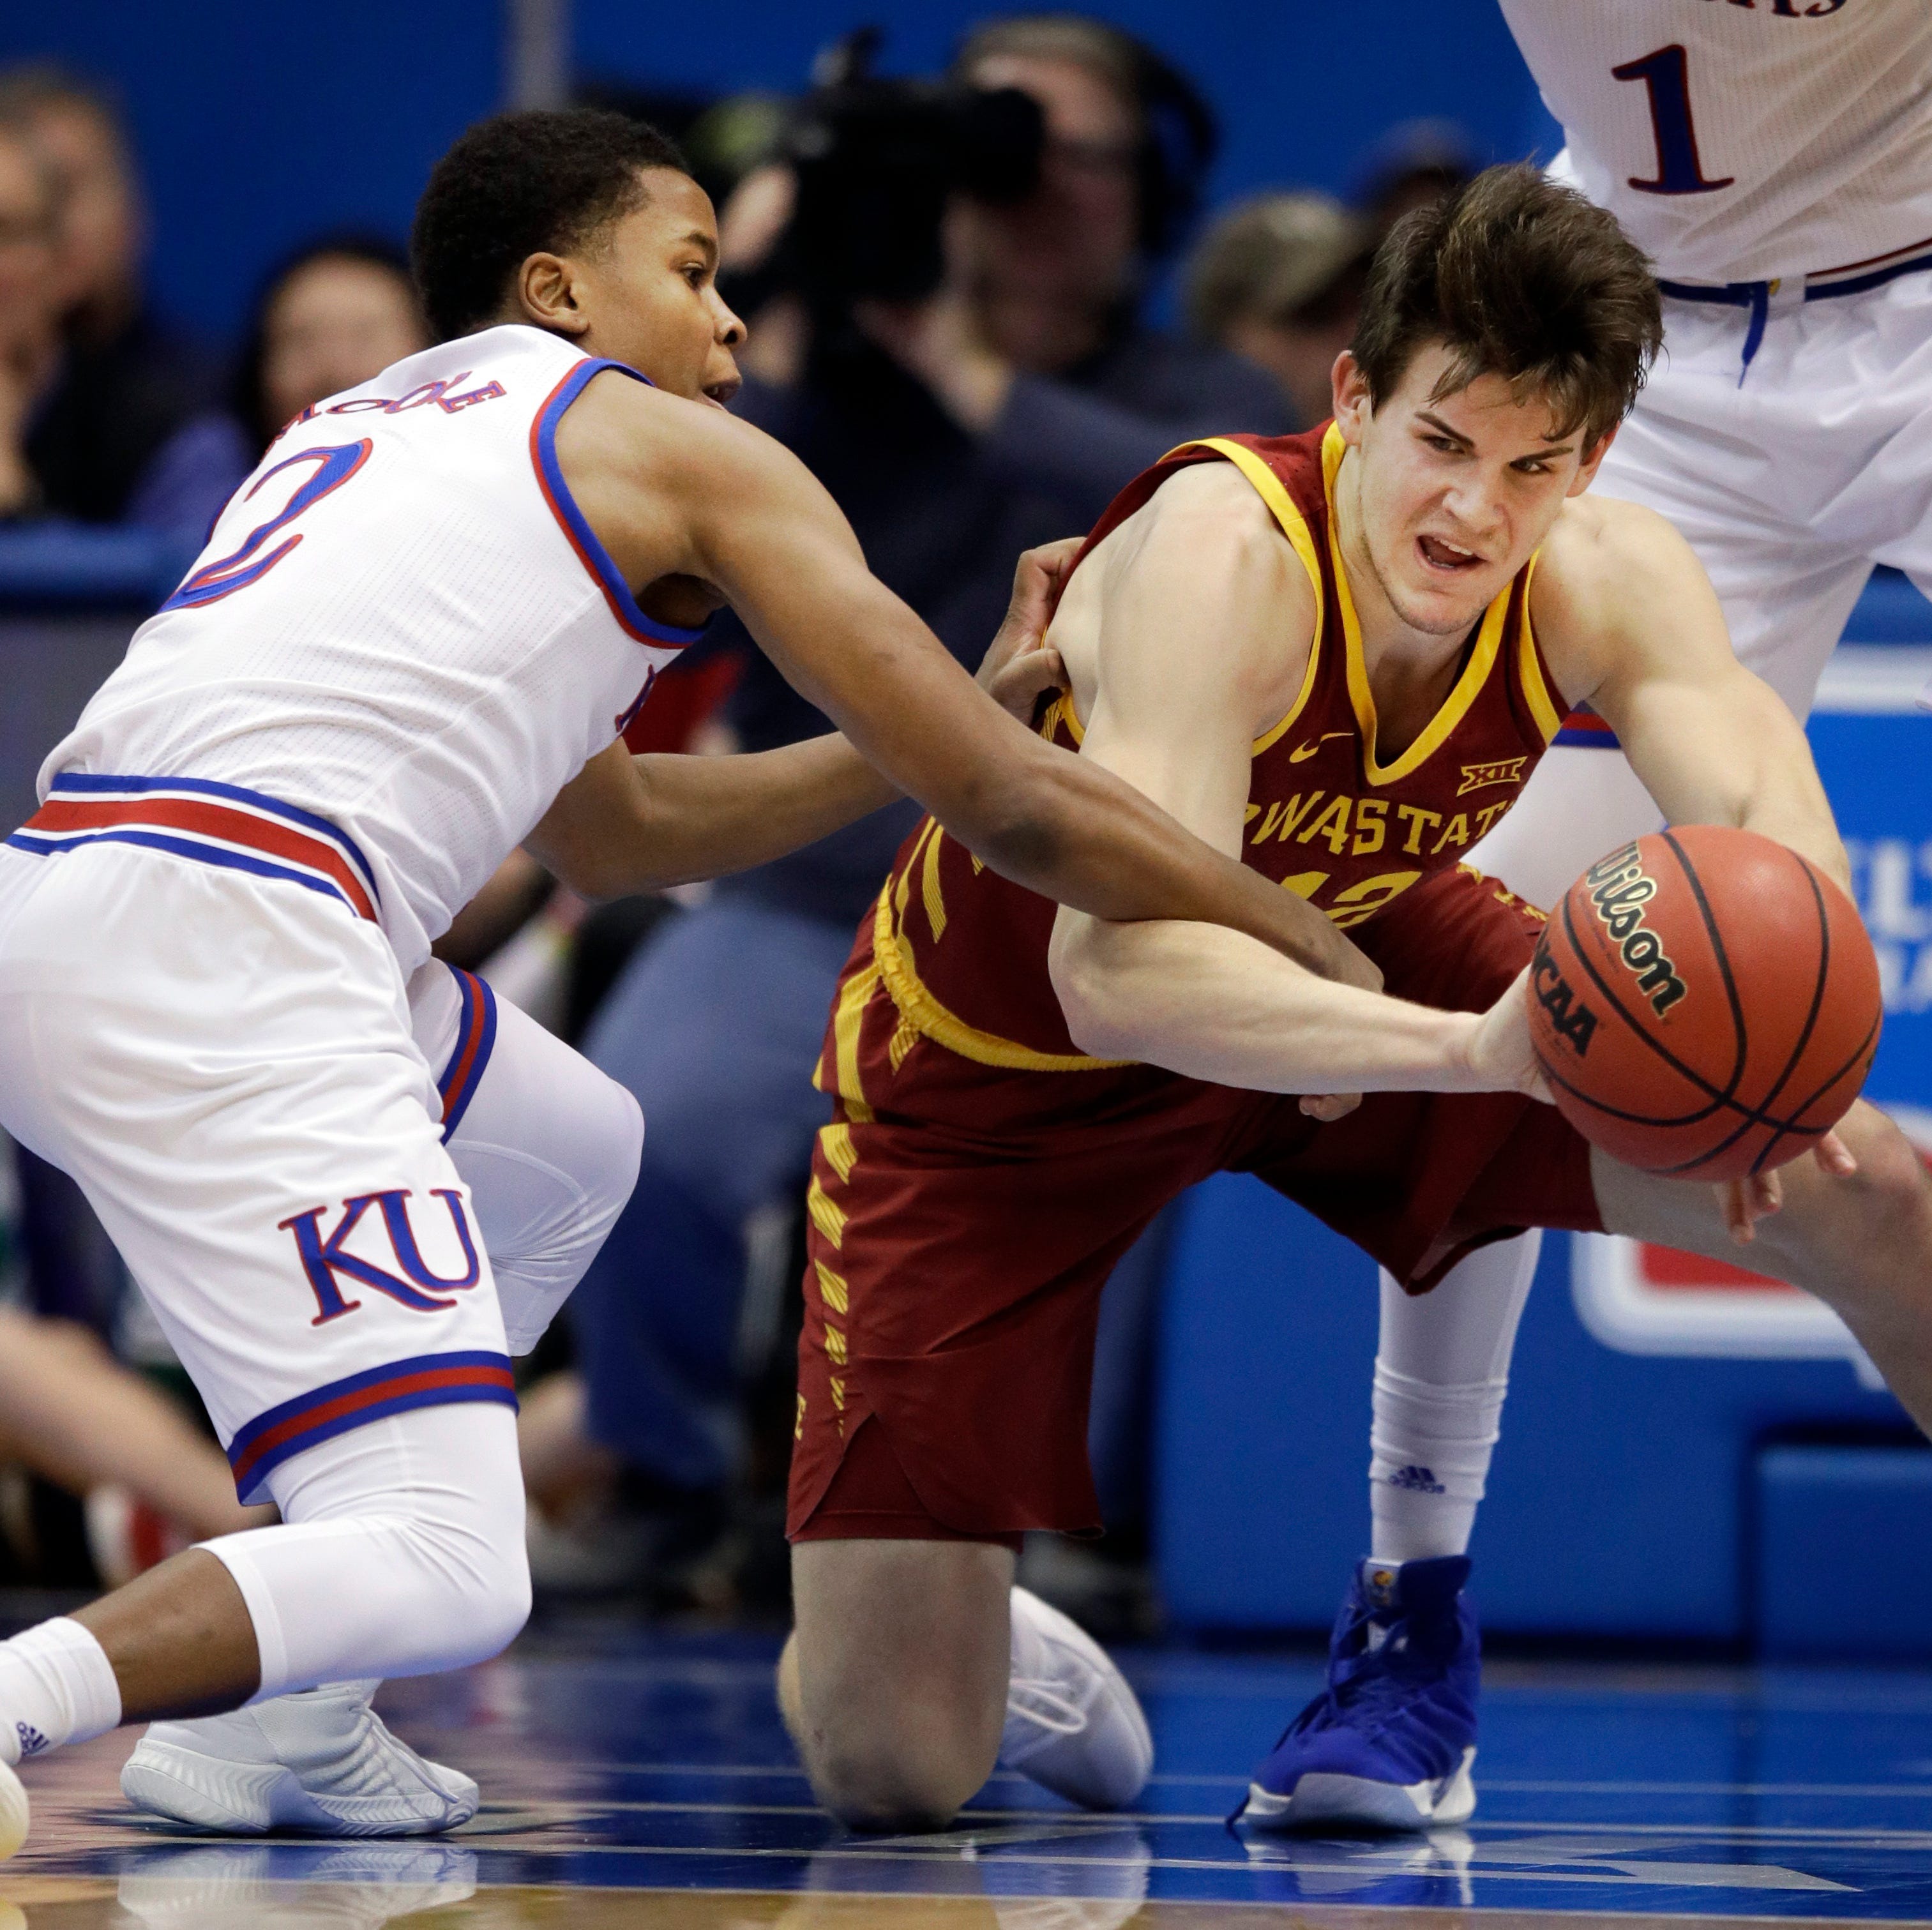 Peterson: Iowa State hung with Kansas until the end